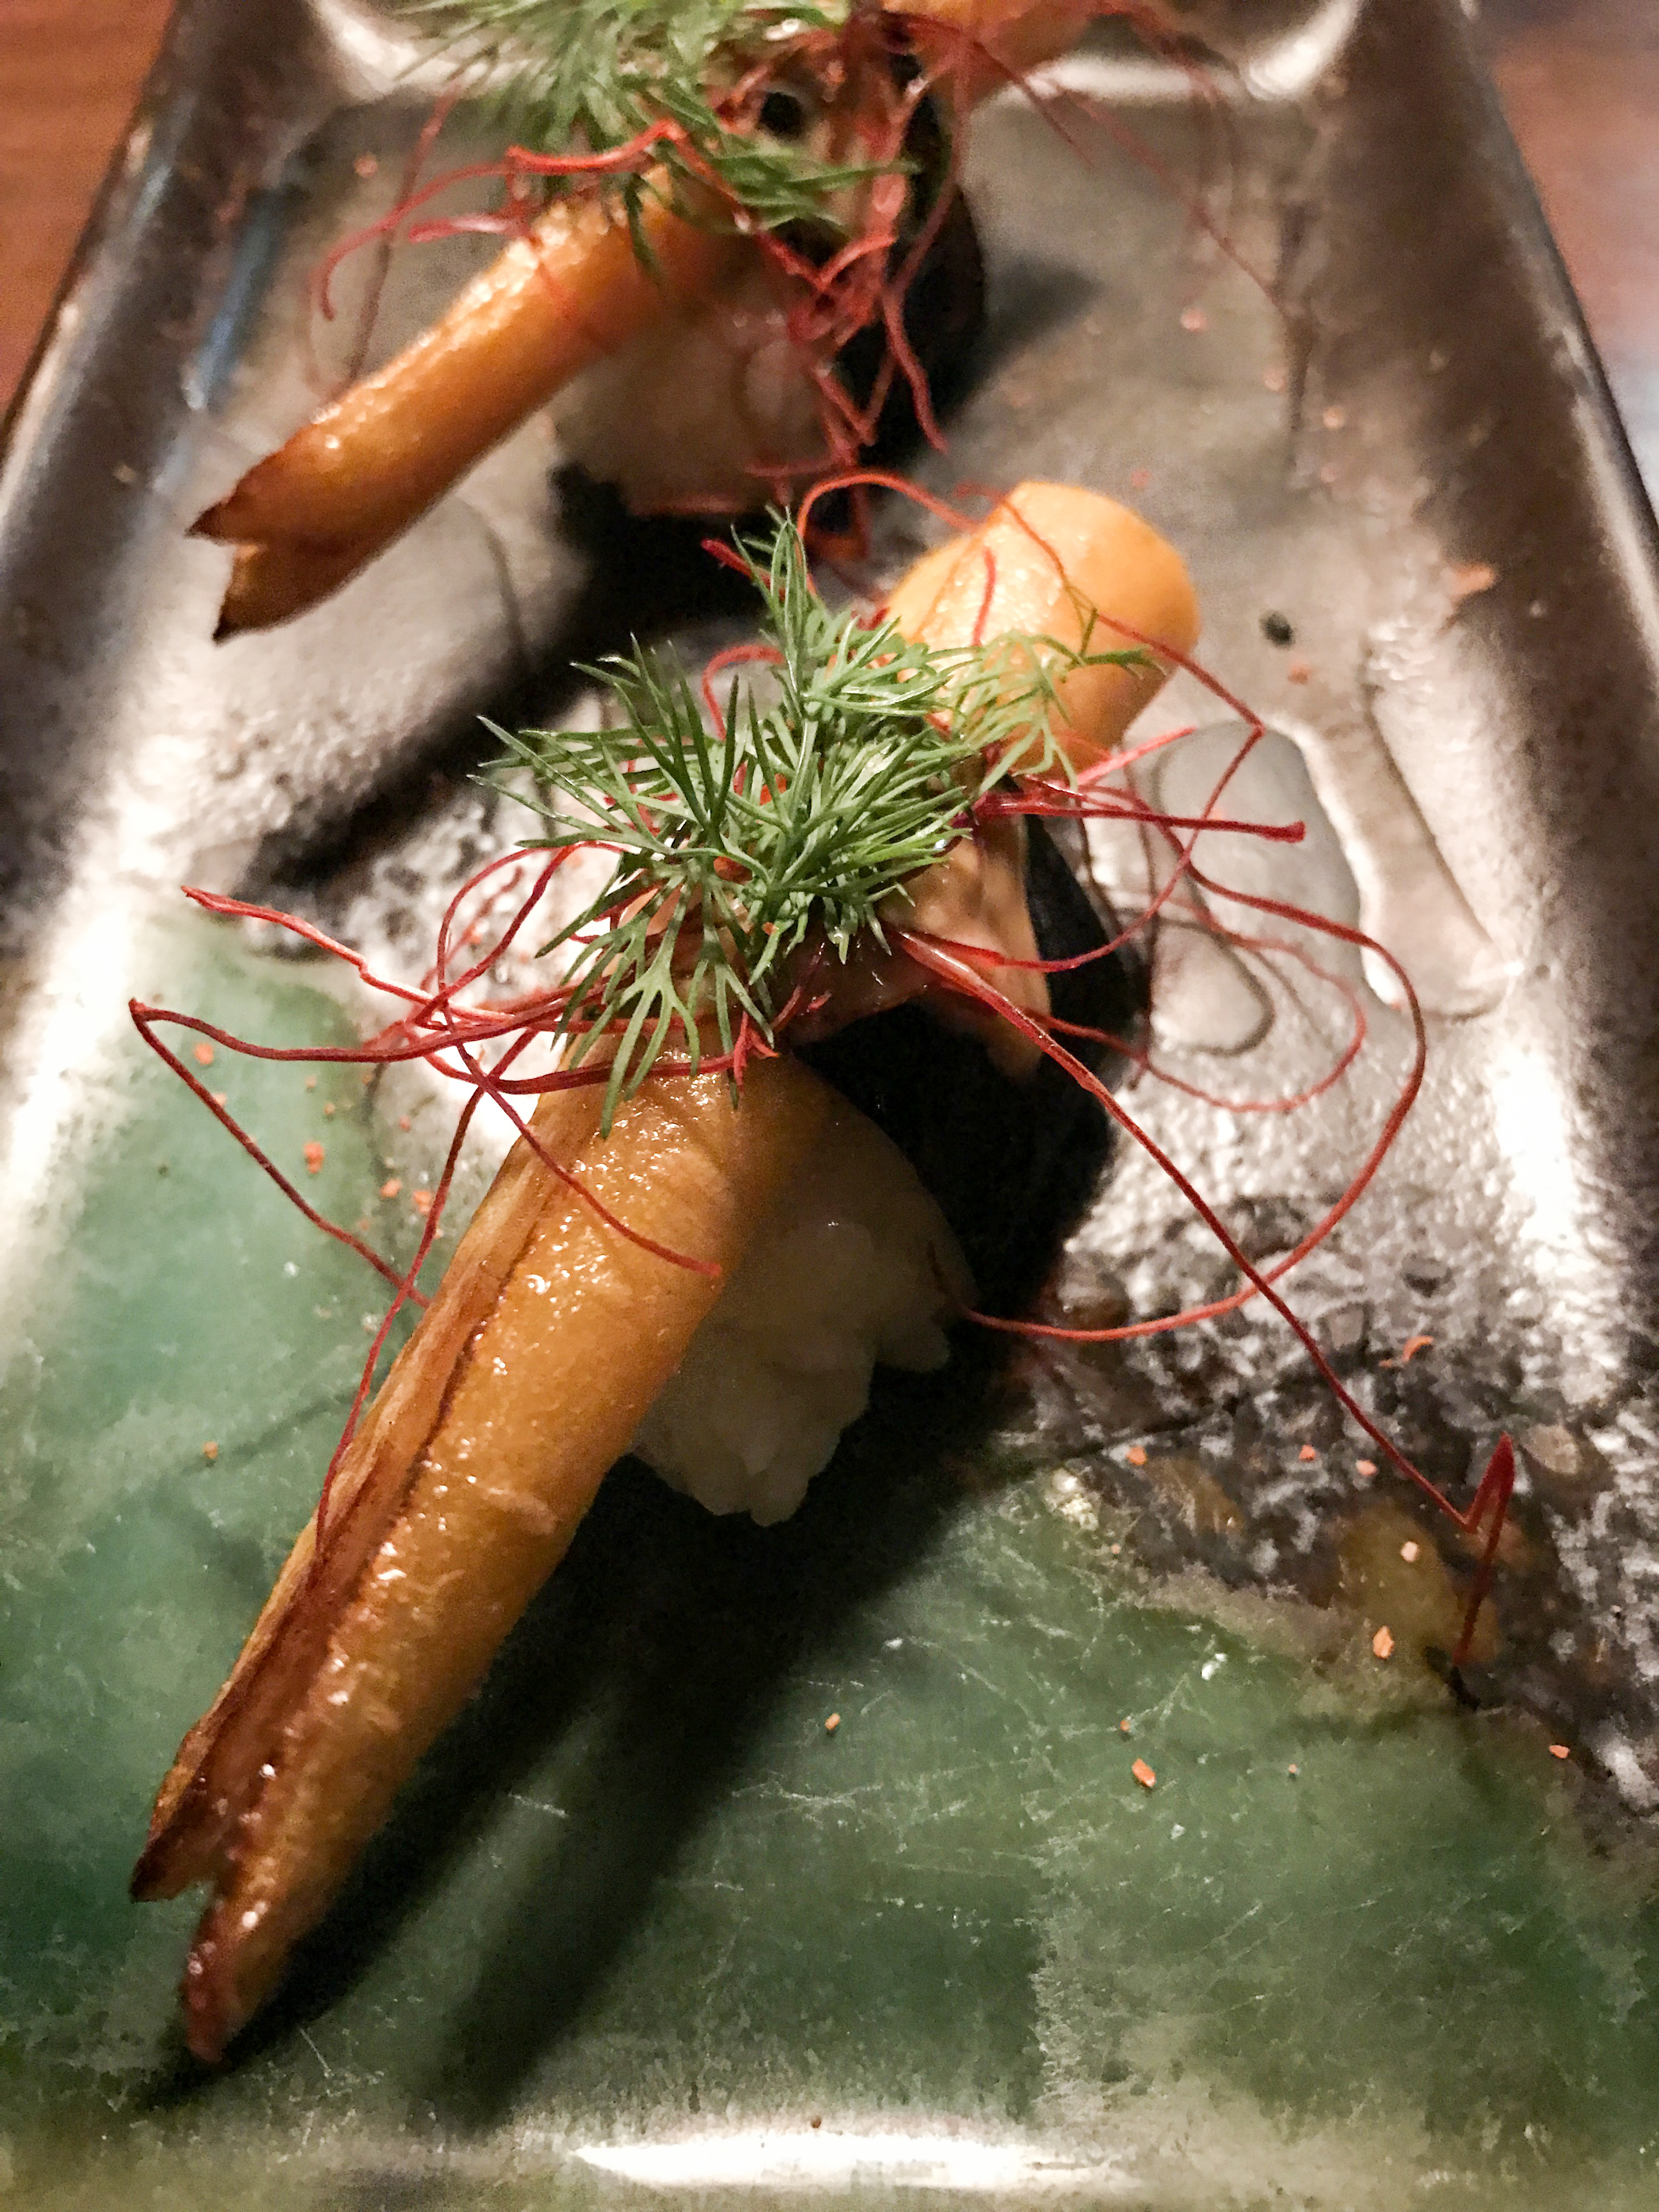 If you are a farmers' market fan in Boston chances are you know and love Farmer Dan from Kimbell Farm. Here we have Kimbell Farm carrots with Japanese chili peppers, togarashi aioli and fresh dill. Farmer Dan would approve!